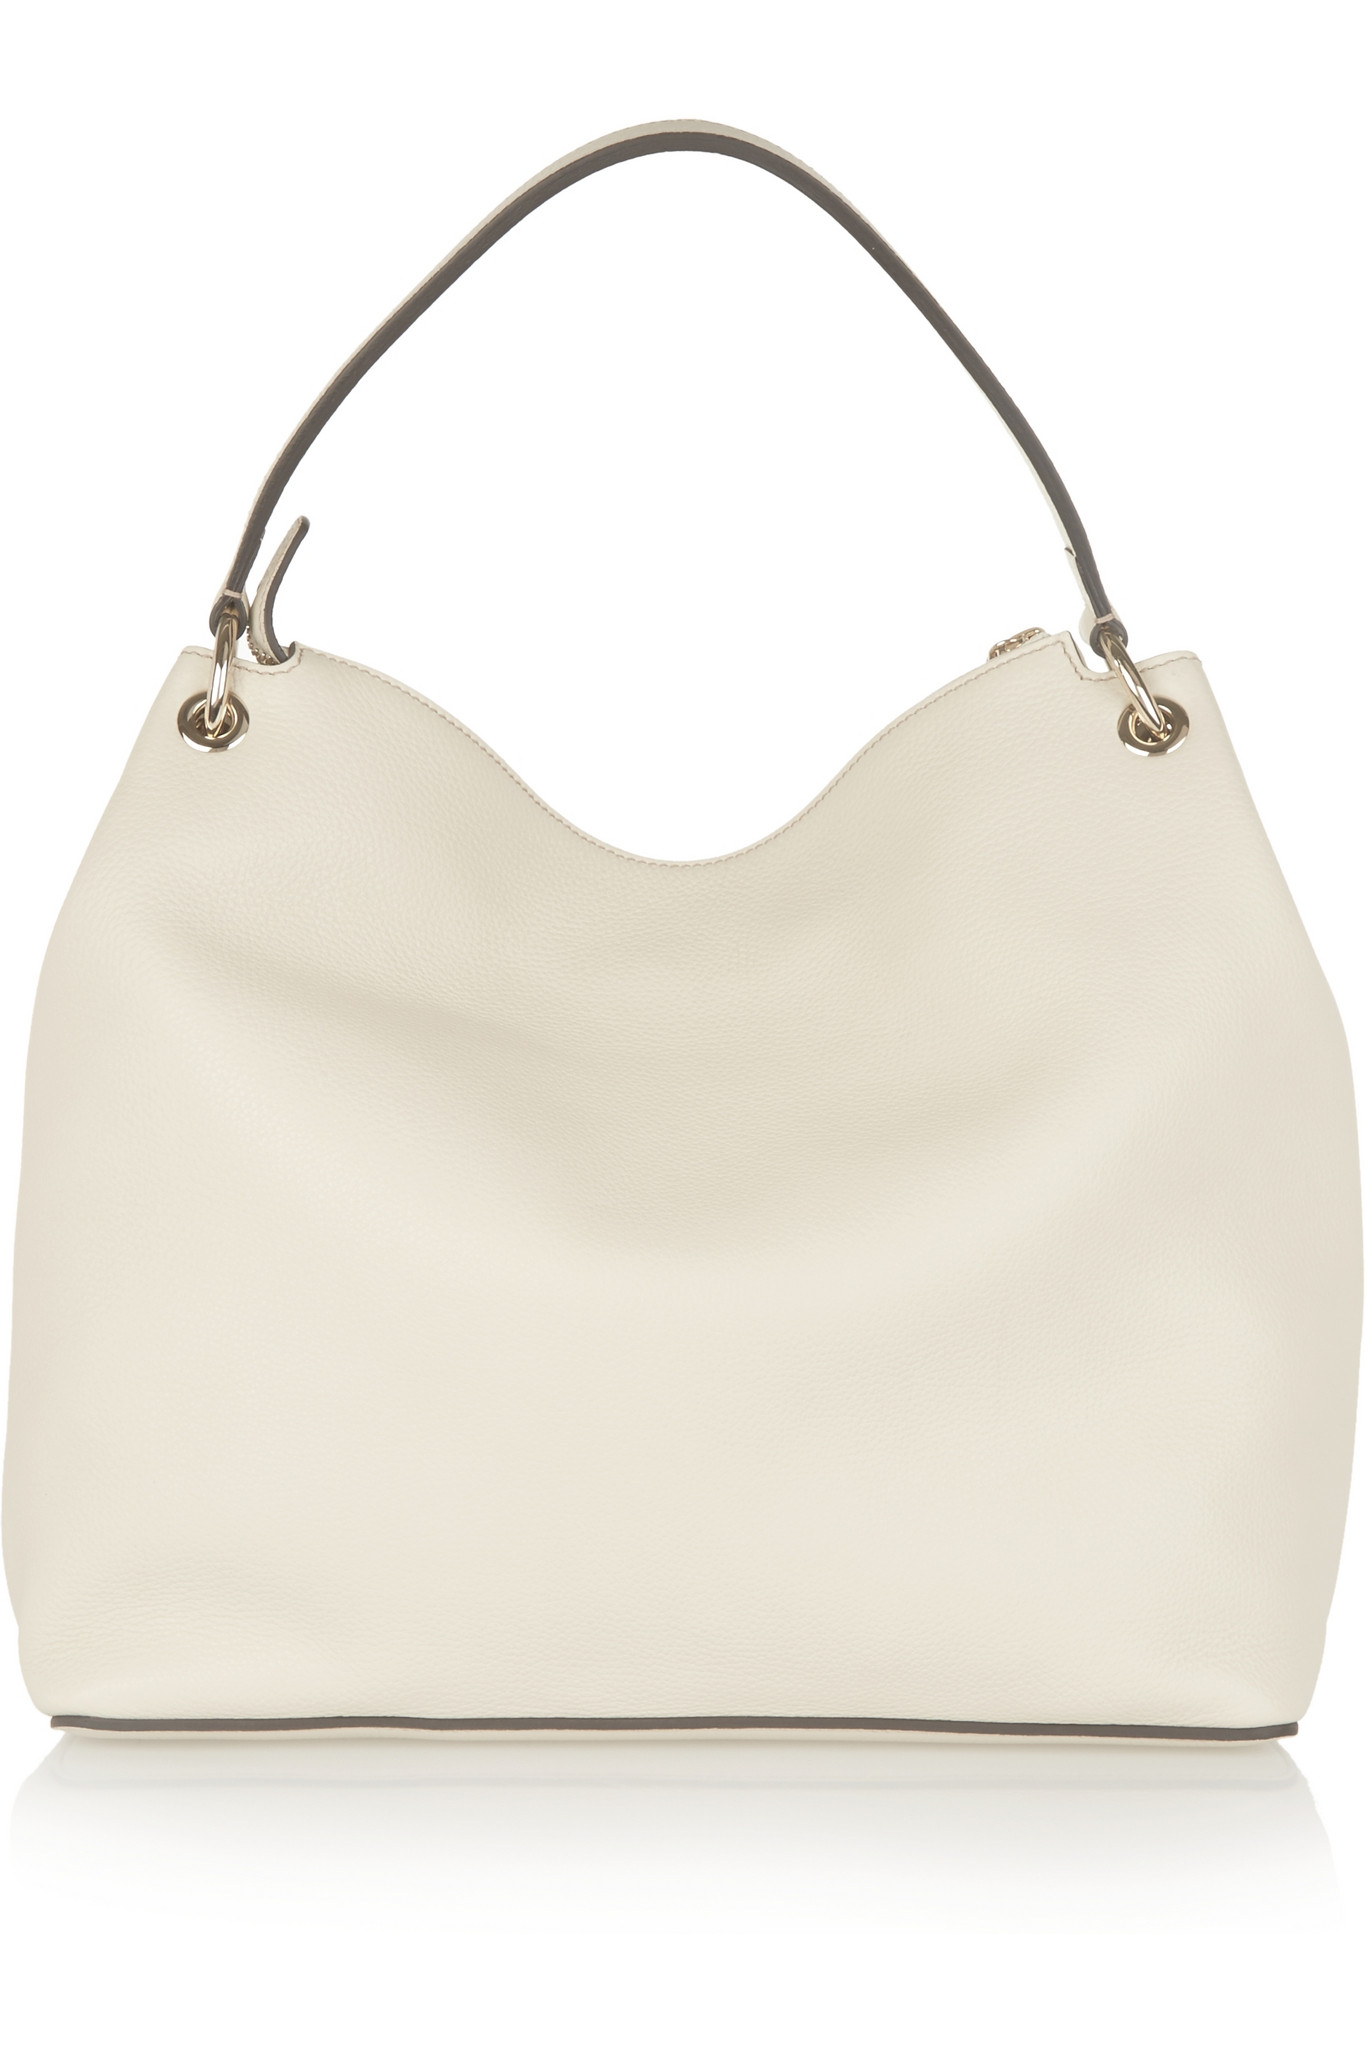 046b8aad06bb Gucci Soho Leather Hobo Bag in Natural - Lyst